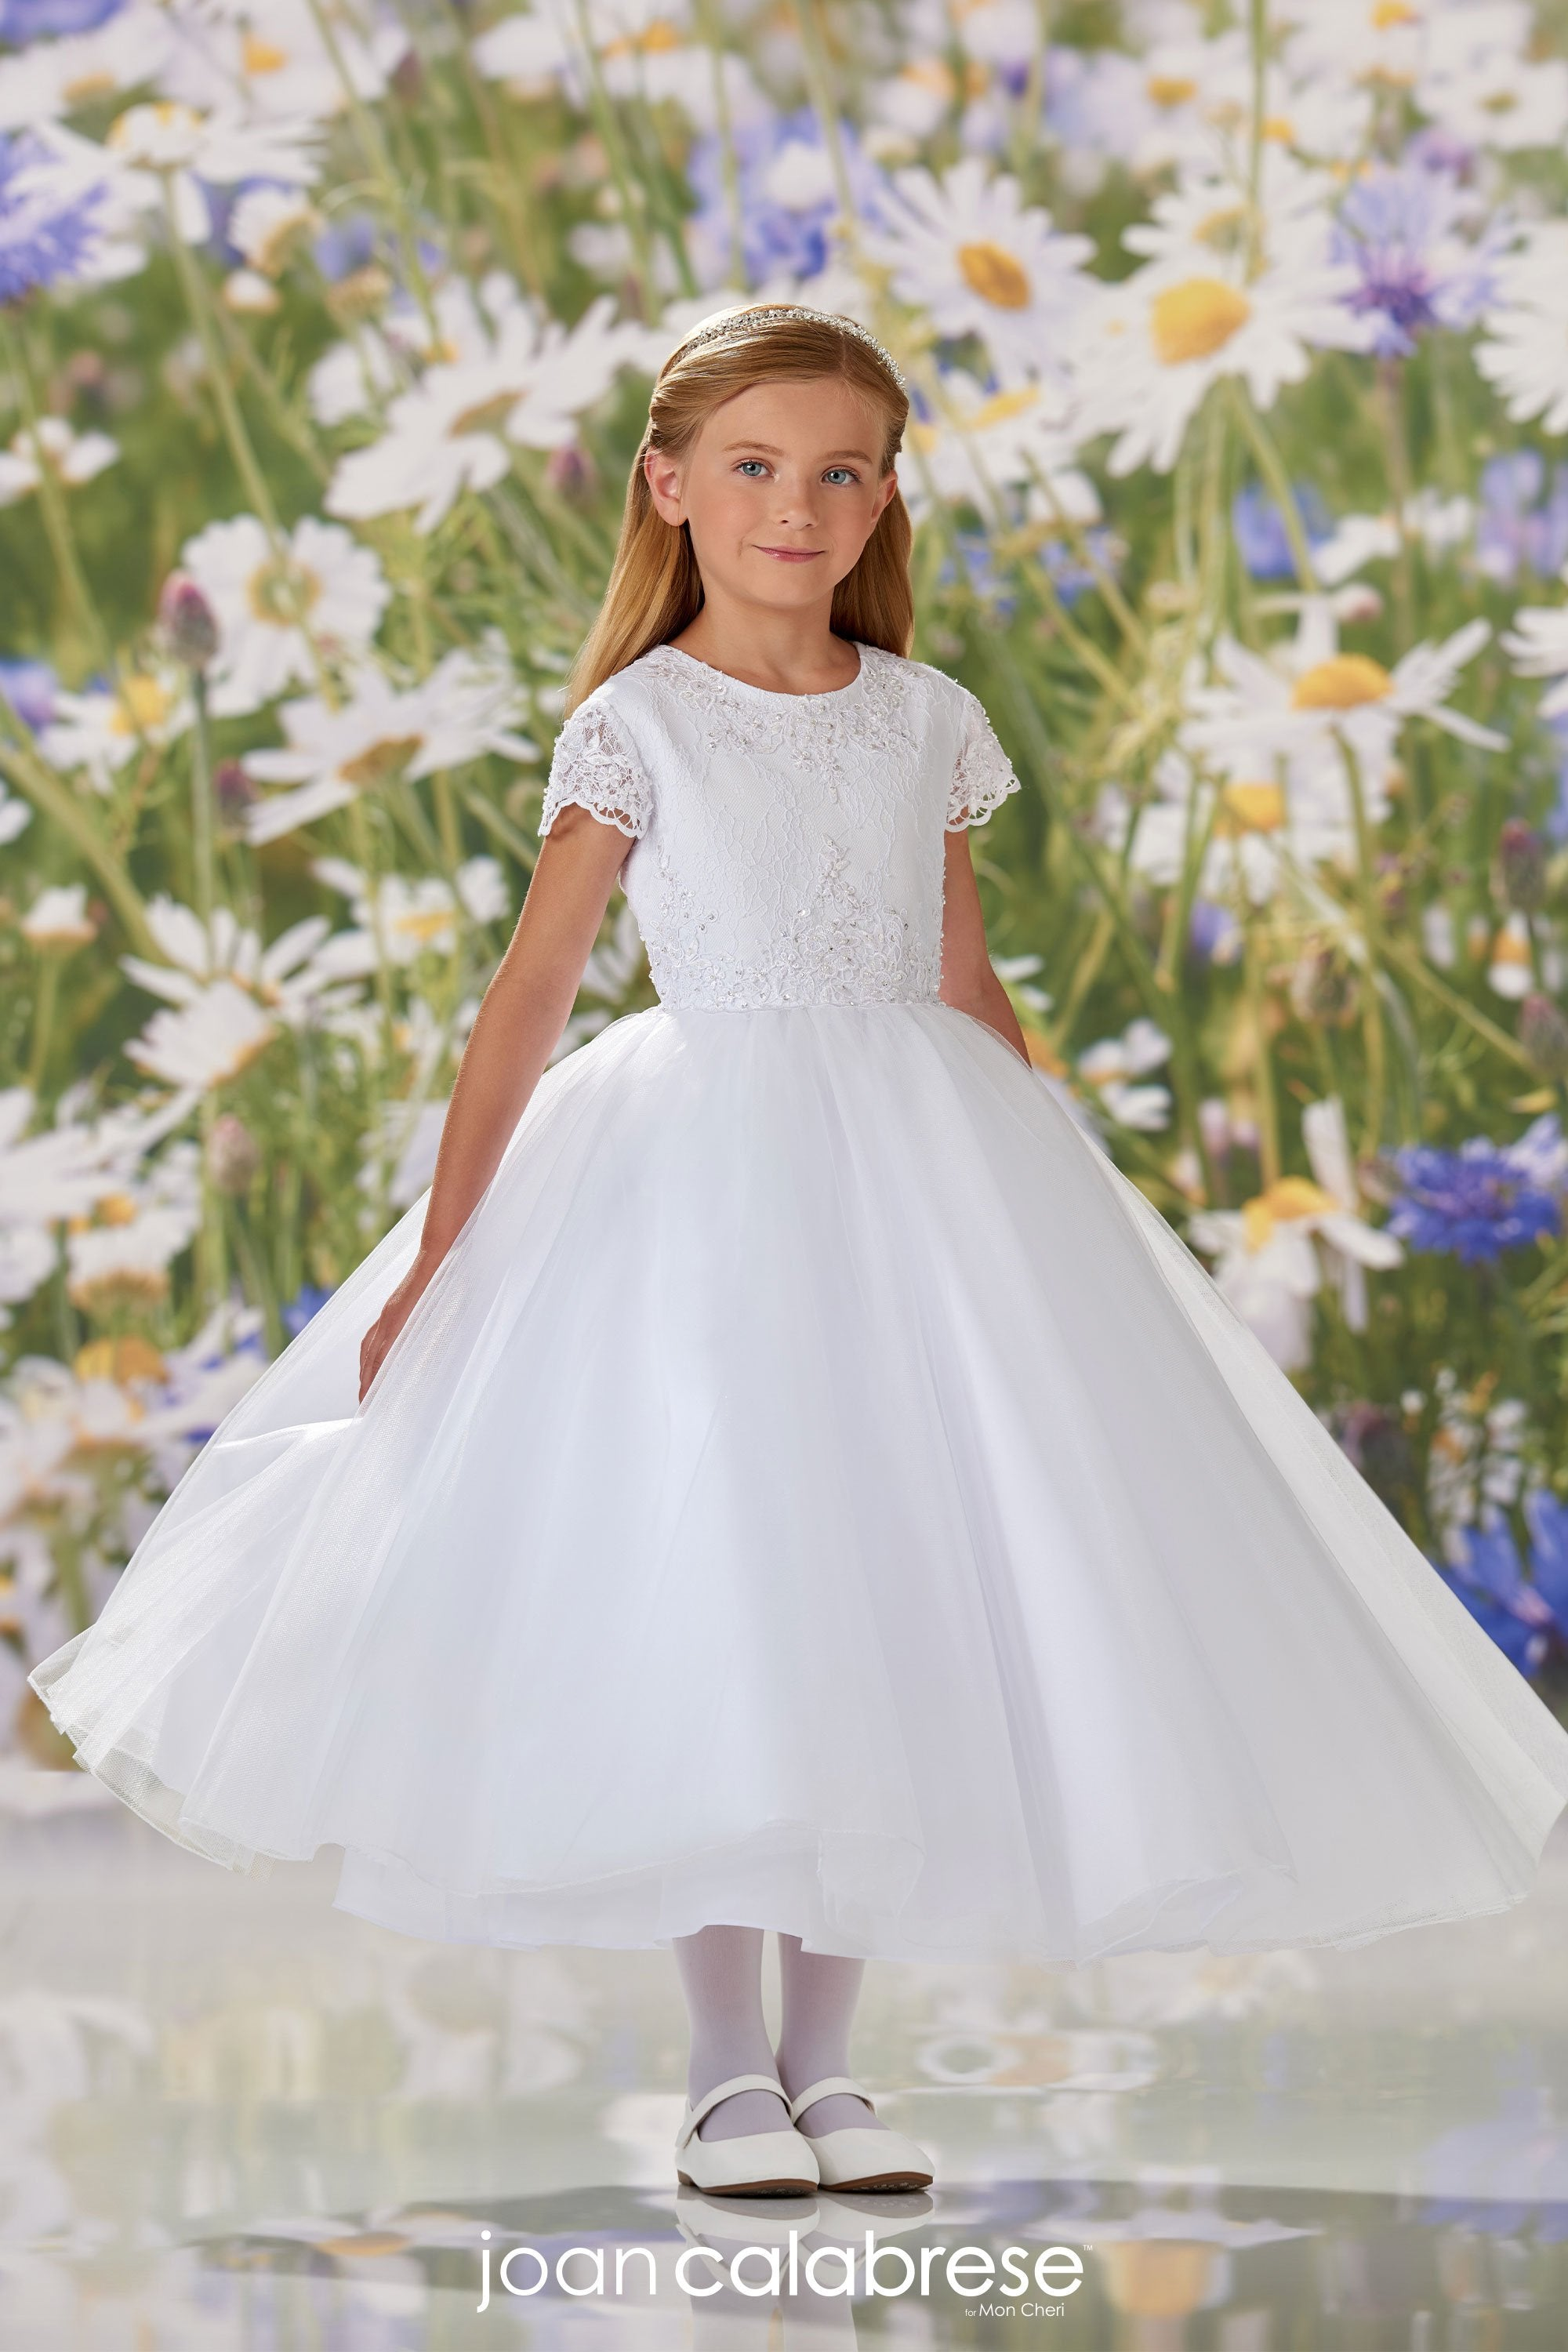 Joan Calabrese For Mon Cheri Communion Dress 120356 - Nenes Lullaby Boutique Inc